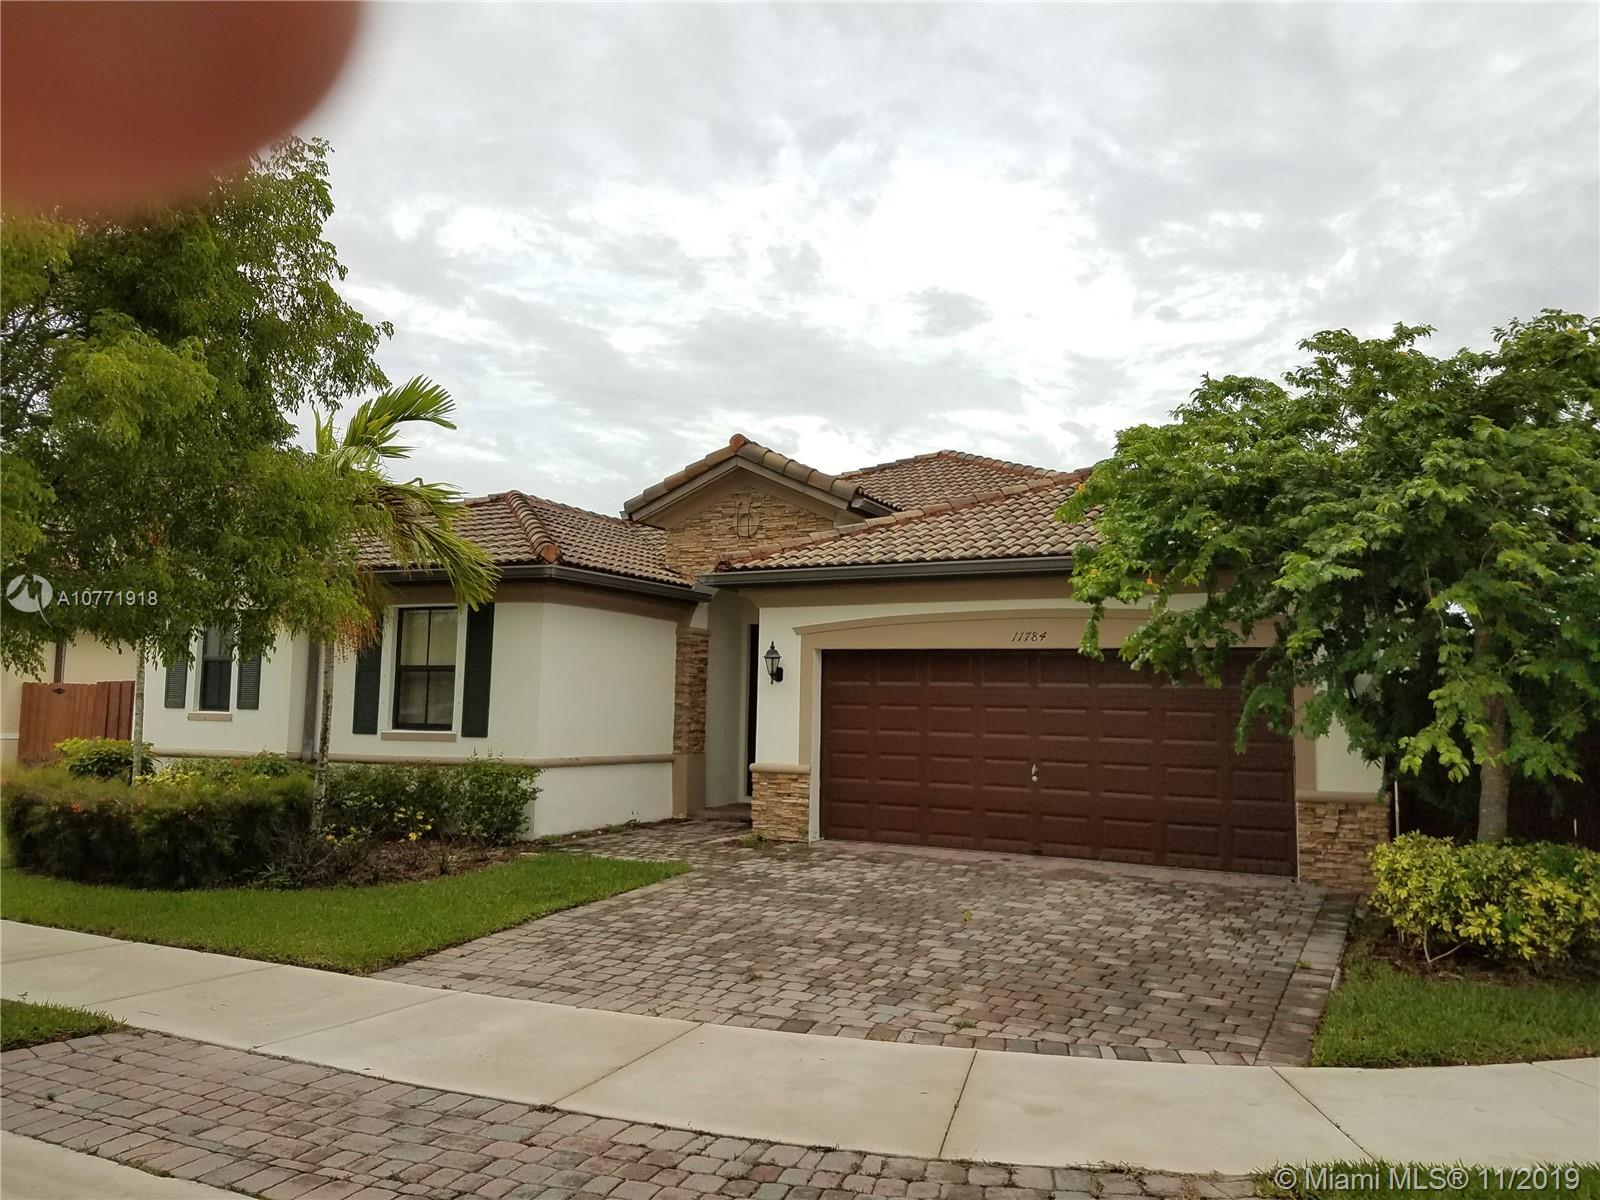 11784 S W 153rd Pl  For Sale A10771918, FL